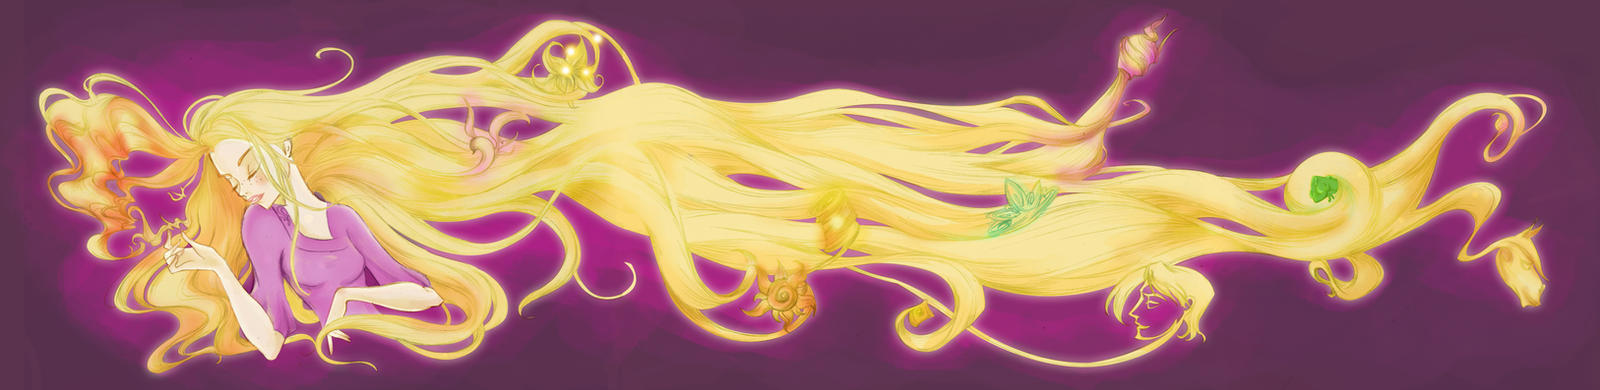 Rapunzel's Dream by MadEye01